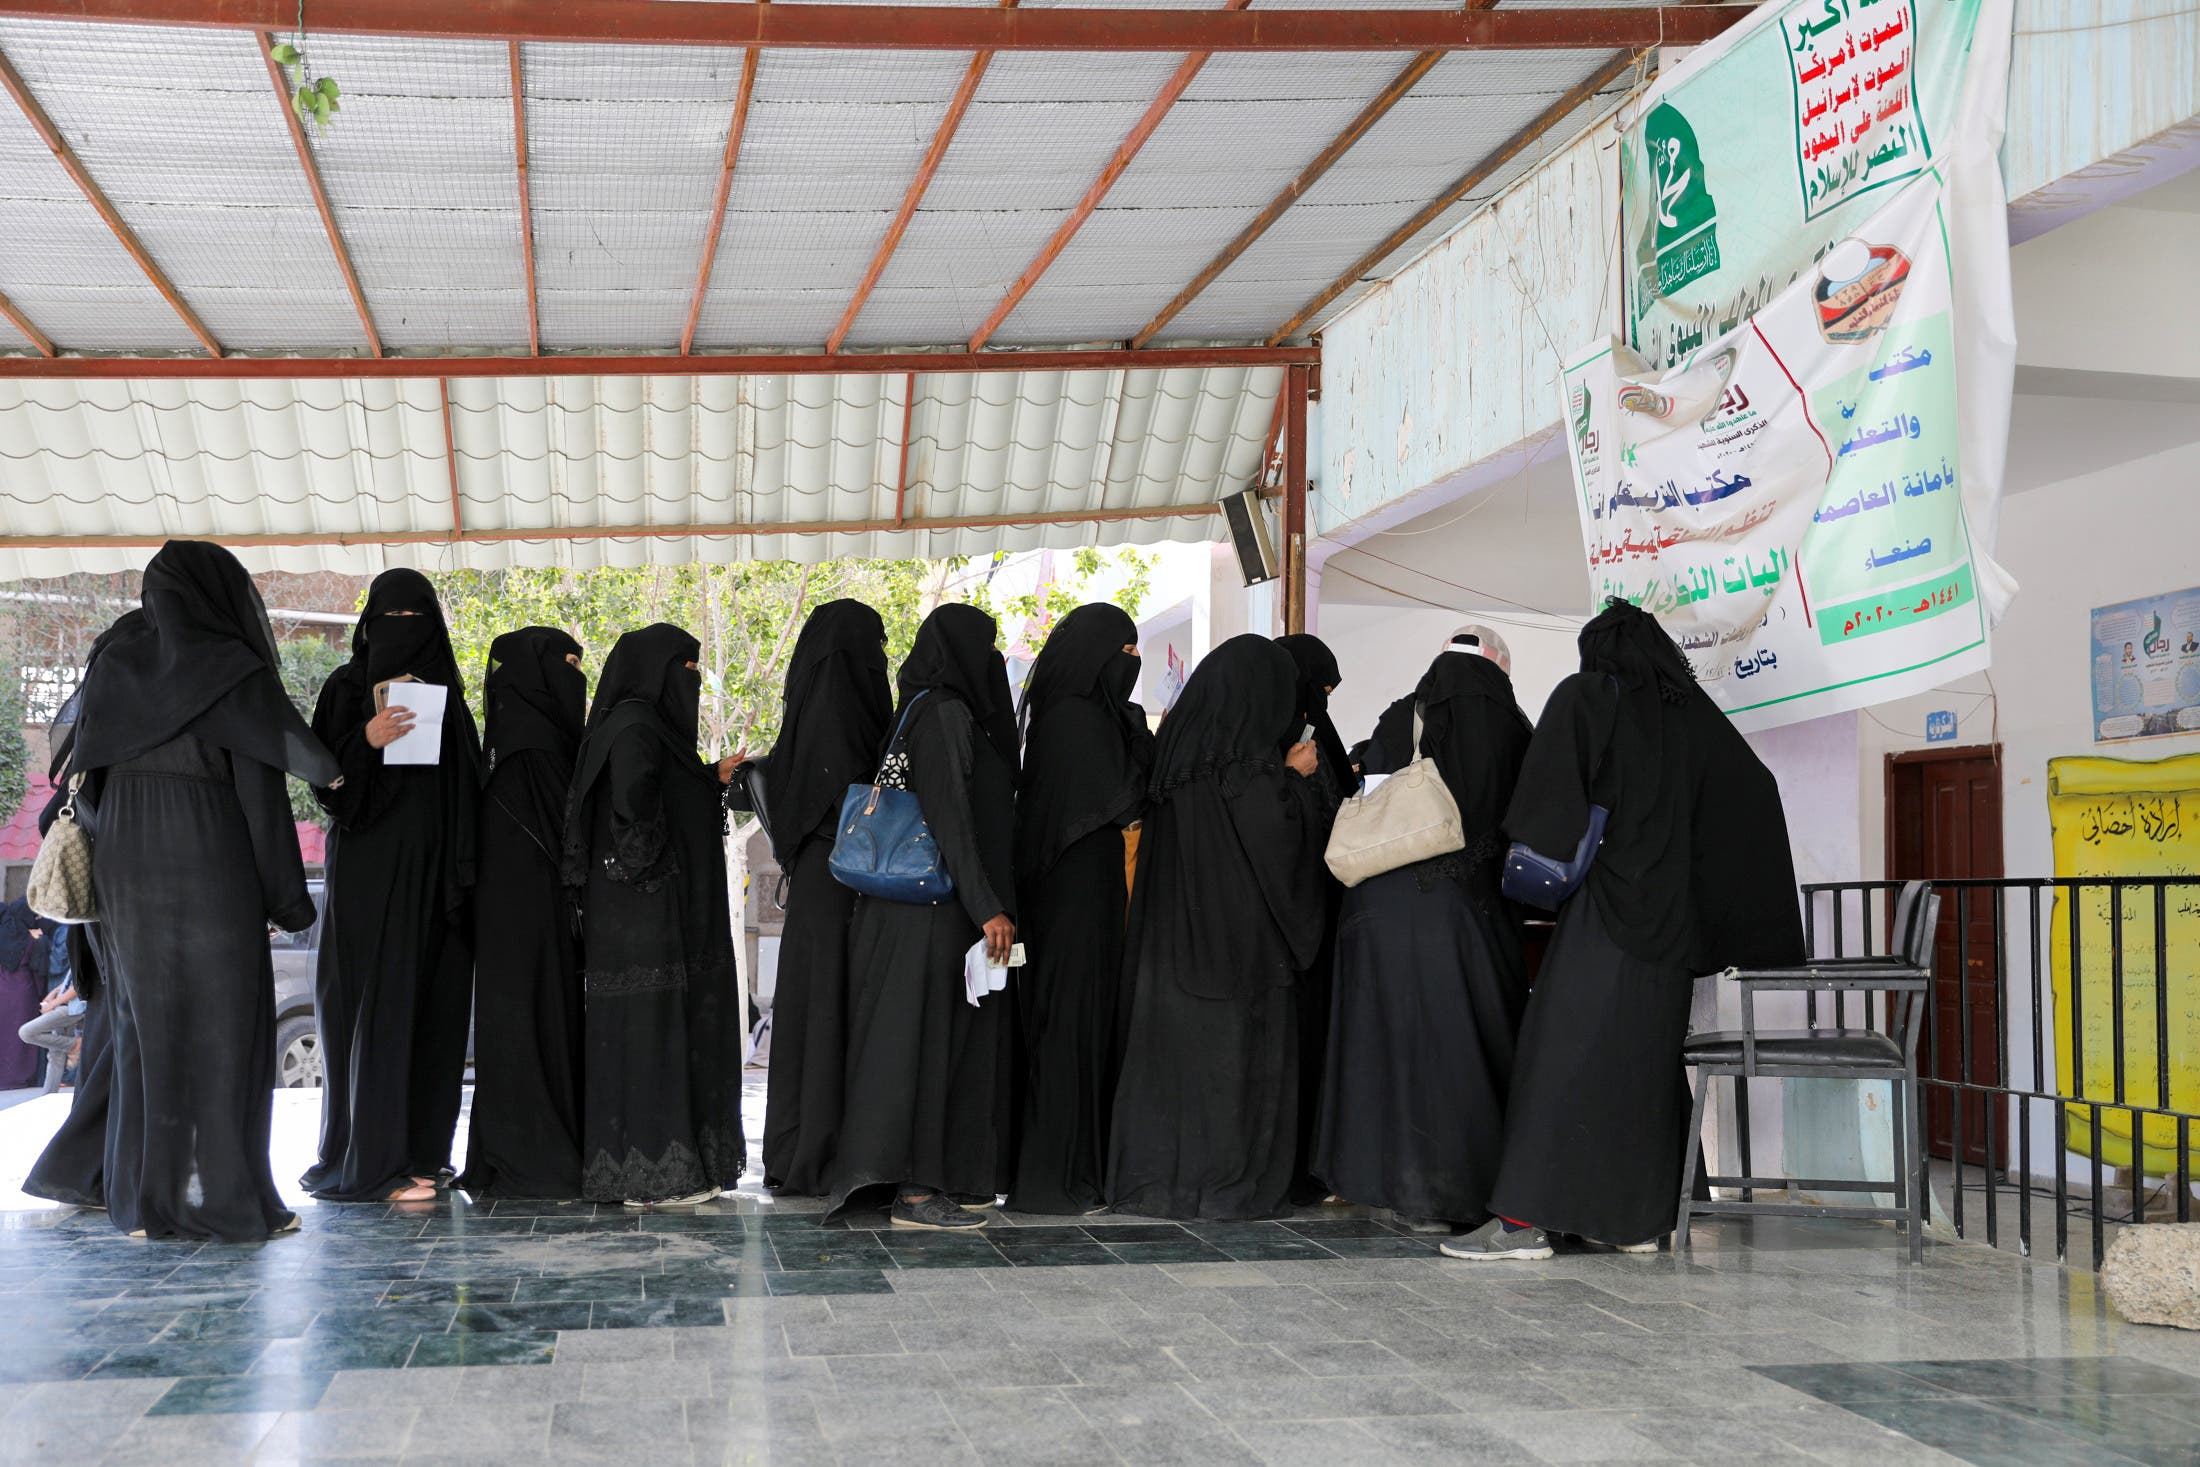 Women stand in line to get food vouchers at a World Food Programme food aid distribution center in Sanaa, Yemen February 11, 2020. (Reuters)